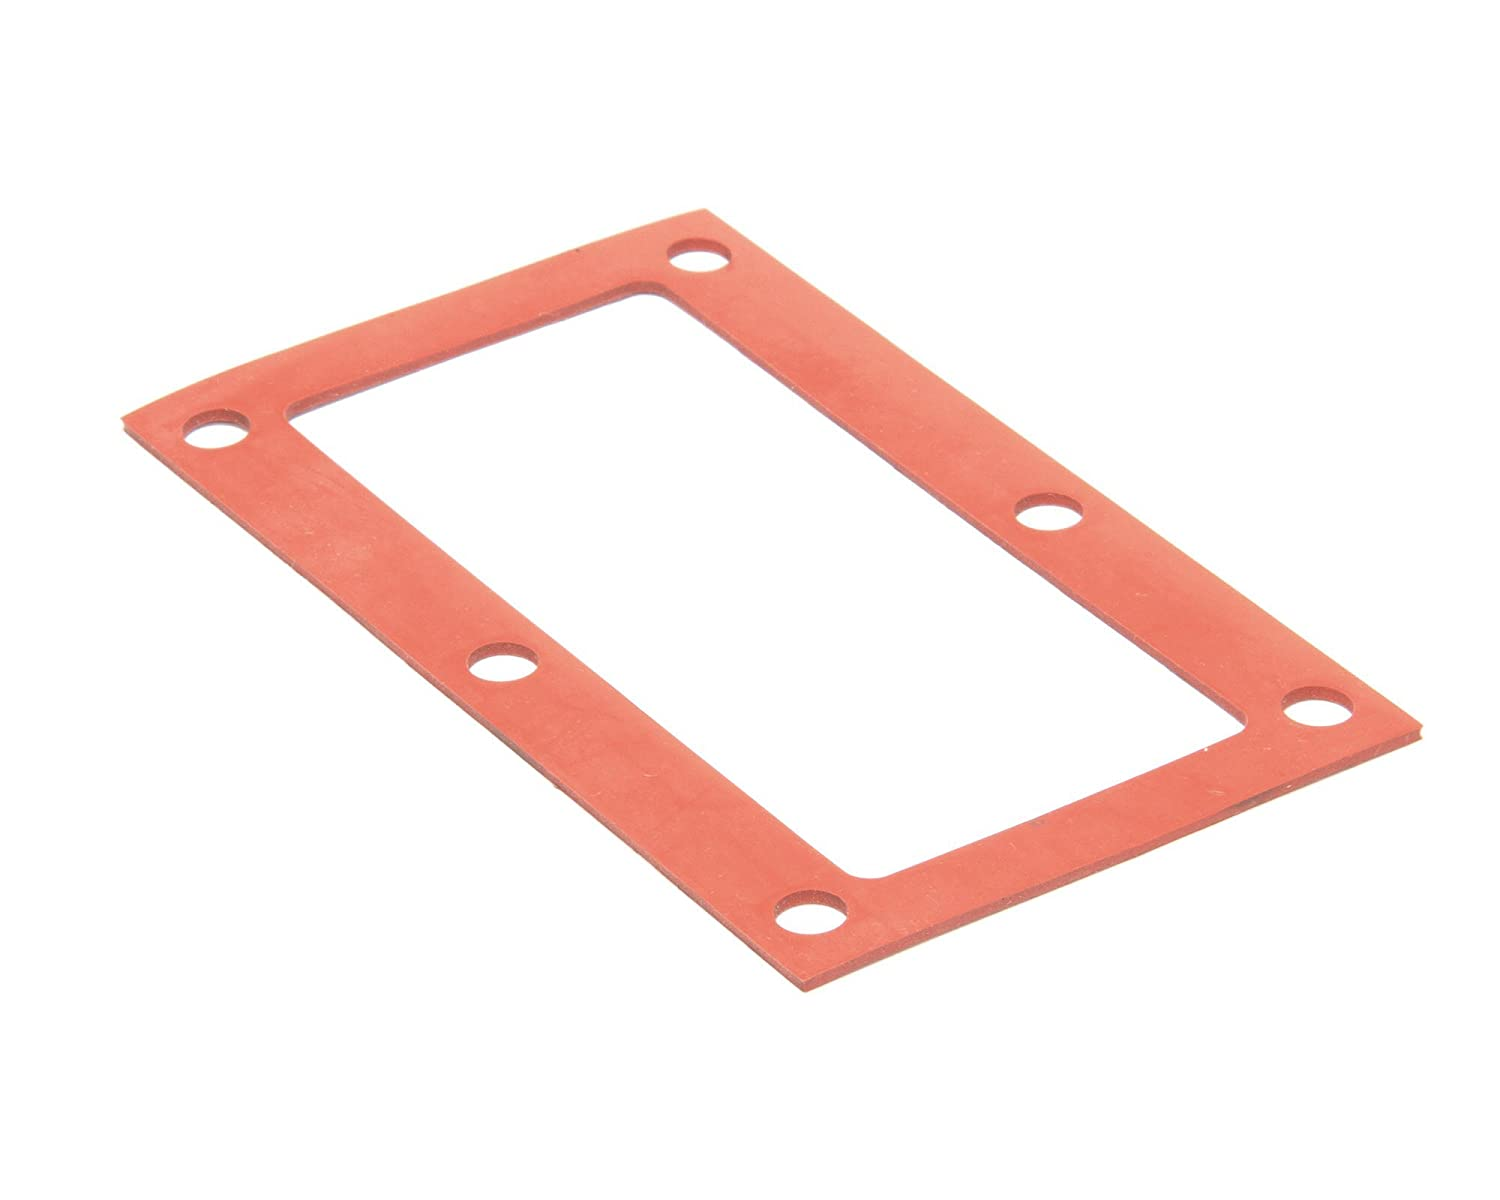 Southbend Range 1176492 Elements Gasket Max 81% OFF Ranking TOP10